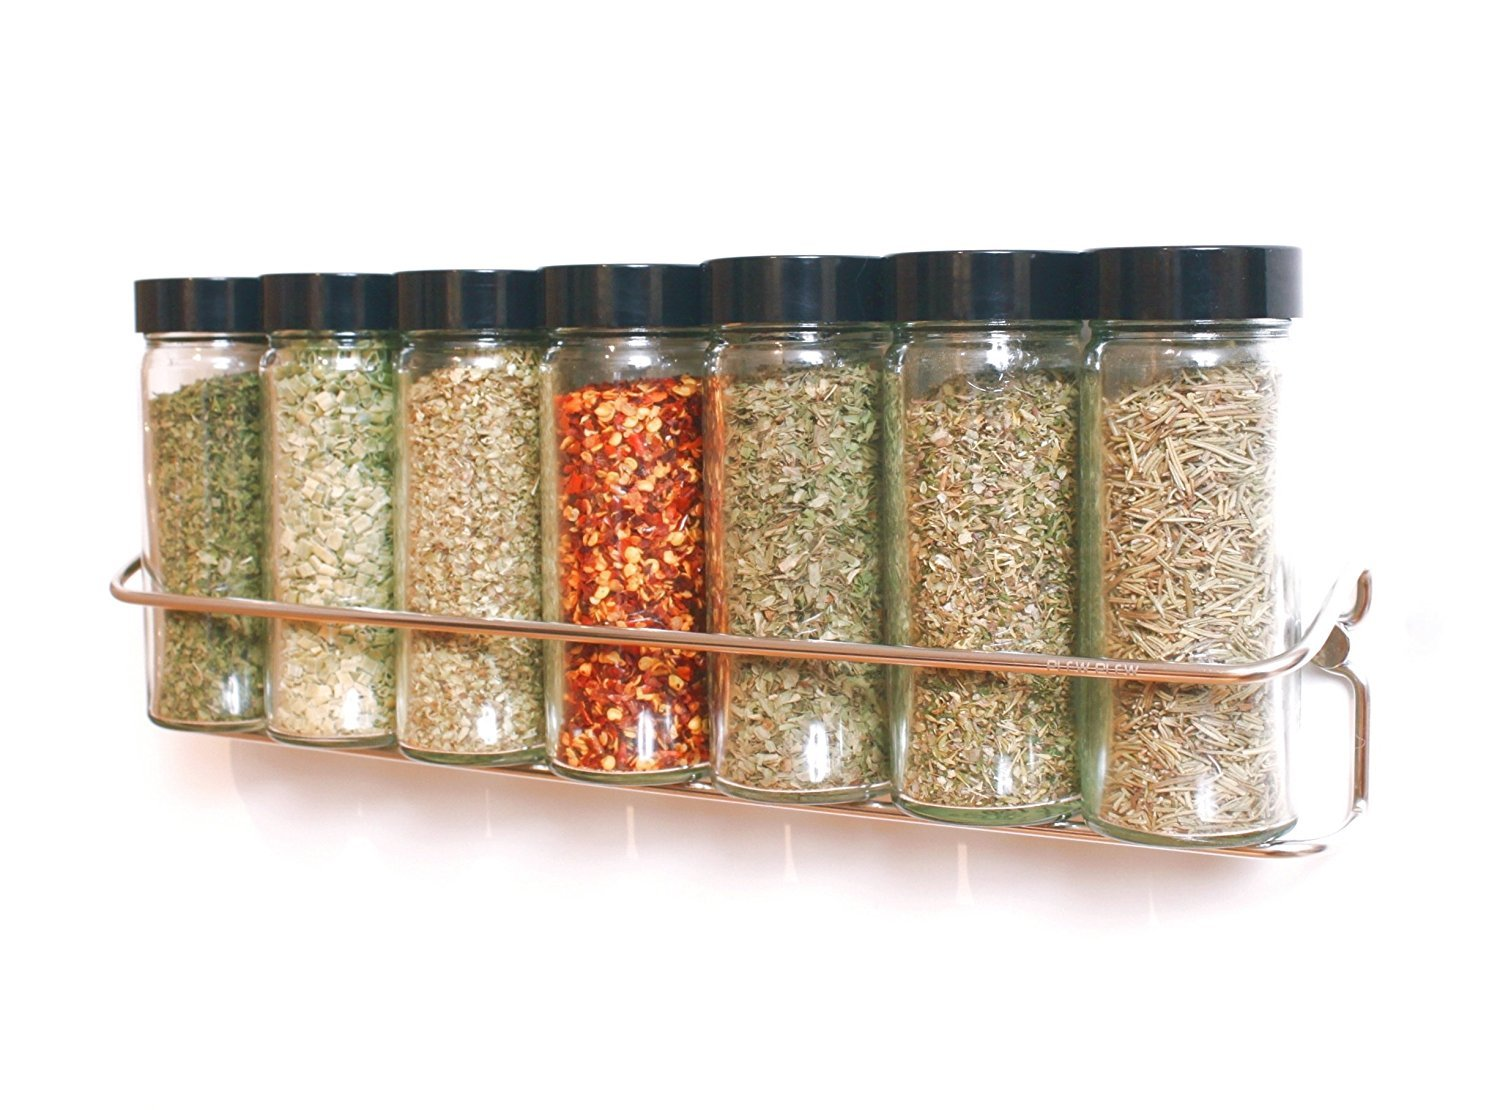 Plew Plew - Spice Rack Stand Holder, stainless steel & wall mounted